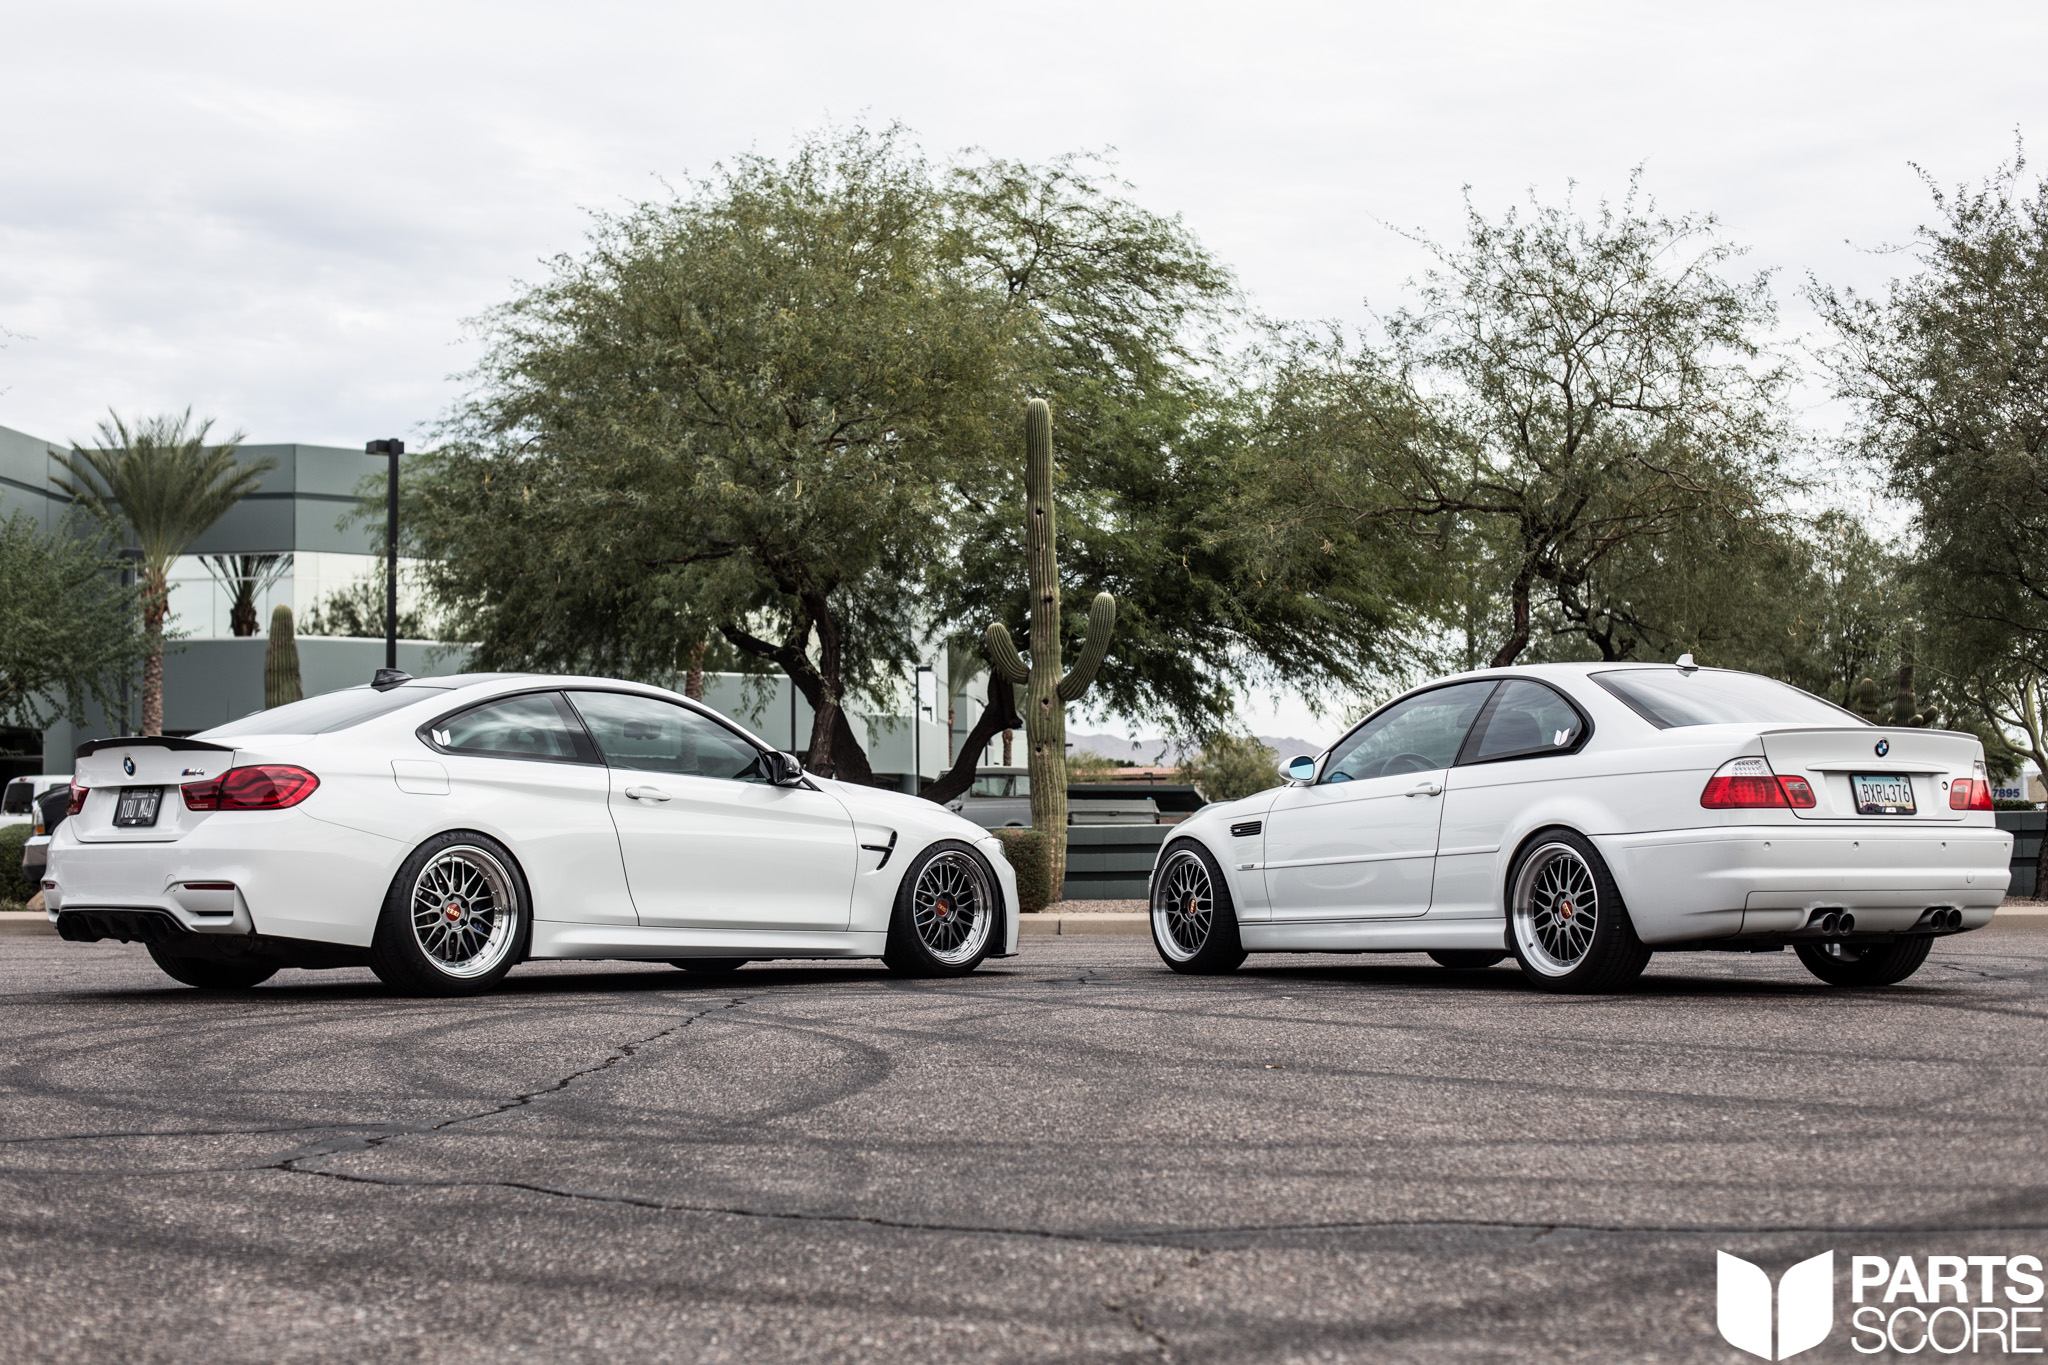 bbs, bbs lm, bbs forged, bmw, bmwm3, m3 , forged wheel, multi piece wheel, 2 piece wheel, two piece wheel, stance, stretch, stancy stretchy, low, lowered, bmw m4 , bmw m, f82, f80, f83, e46, e46 m3, f82 m4